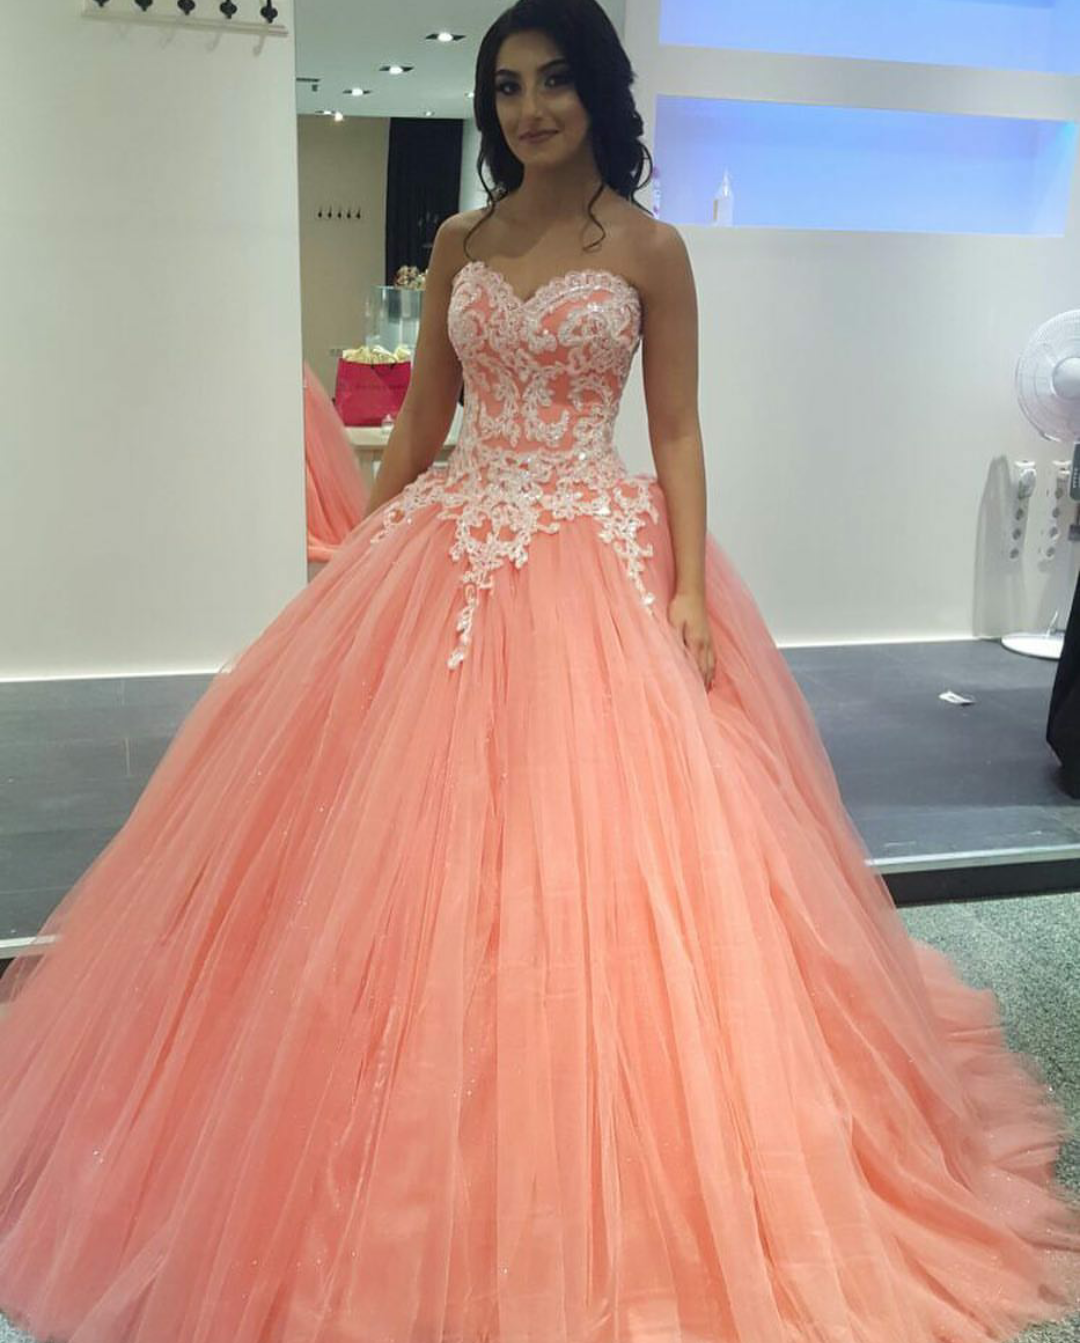 5c7a7248e1b 2017 Vintage Coral Prom Dress Puffy Ball Gown Sparkly Appliqued Bodice  Dropped Tulle Prom Dresses Girls